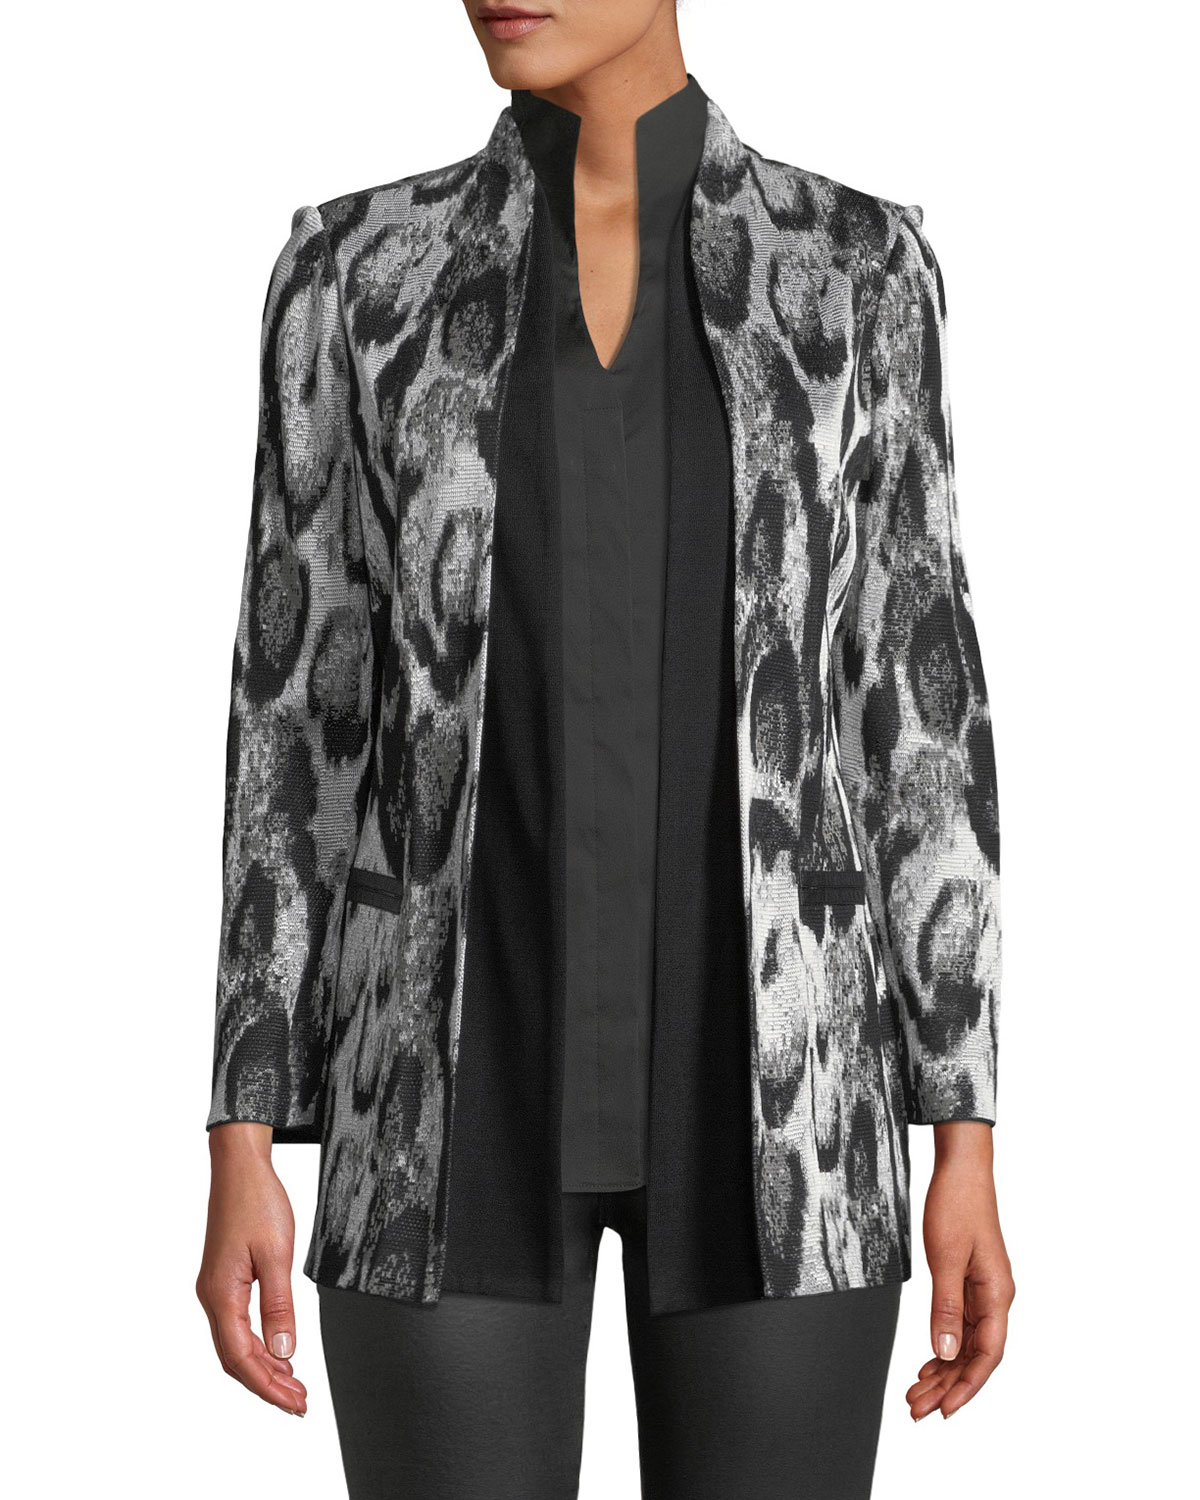 MISOOK SNOW LEOPARD PRINTED JACKET W/ SHAWL FRONT, PLUS SIZE